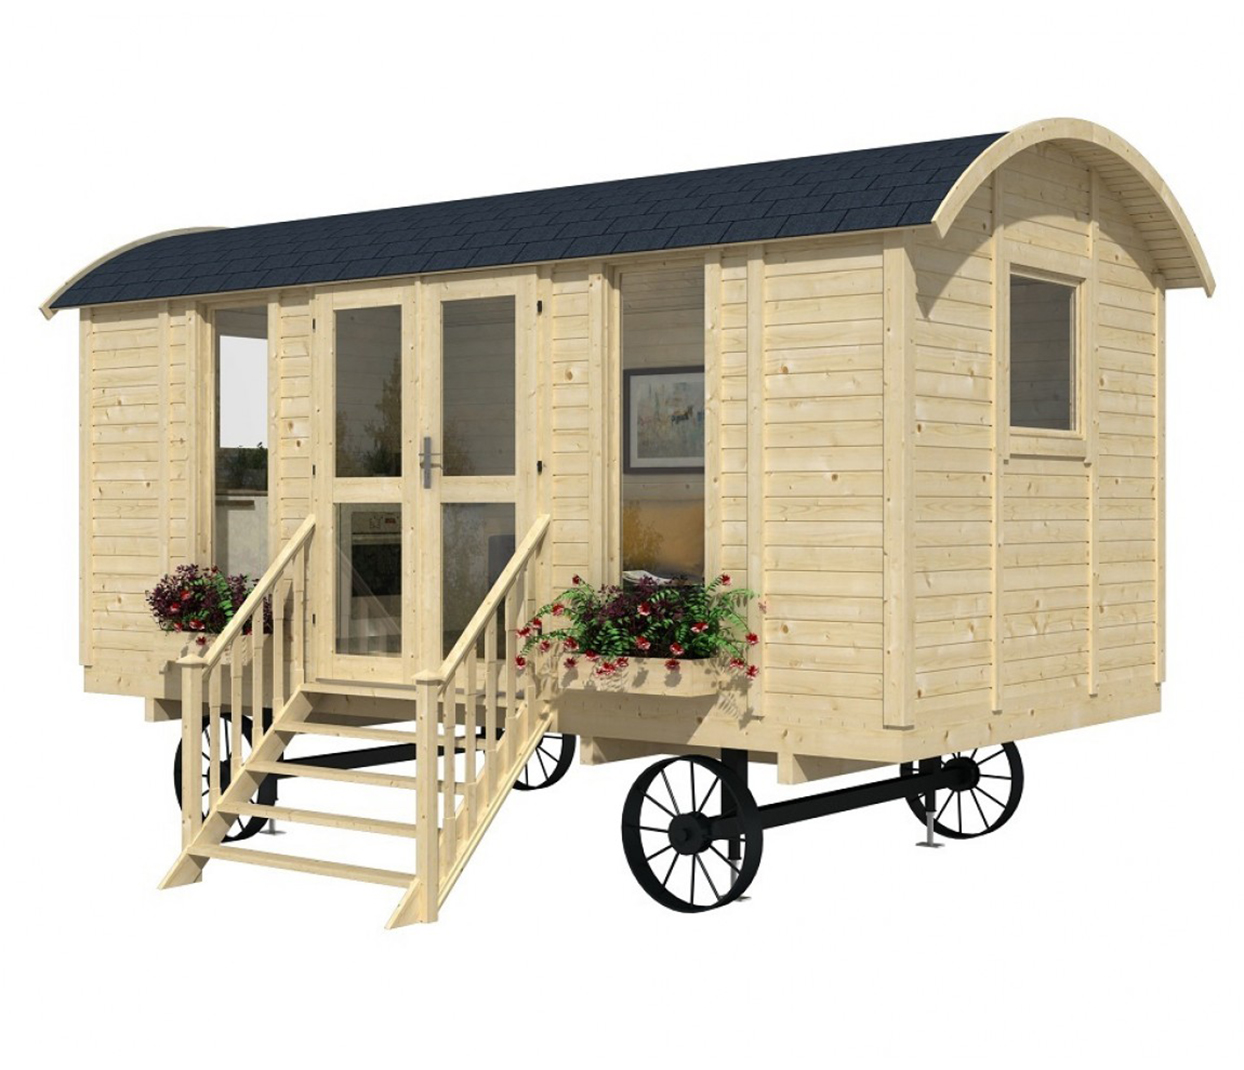 tiny house on wheels with stairs up to the front door and flower window boxes and rounded dark gray roof